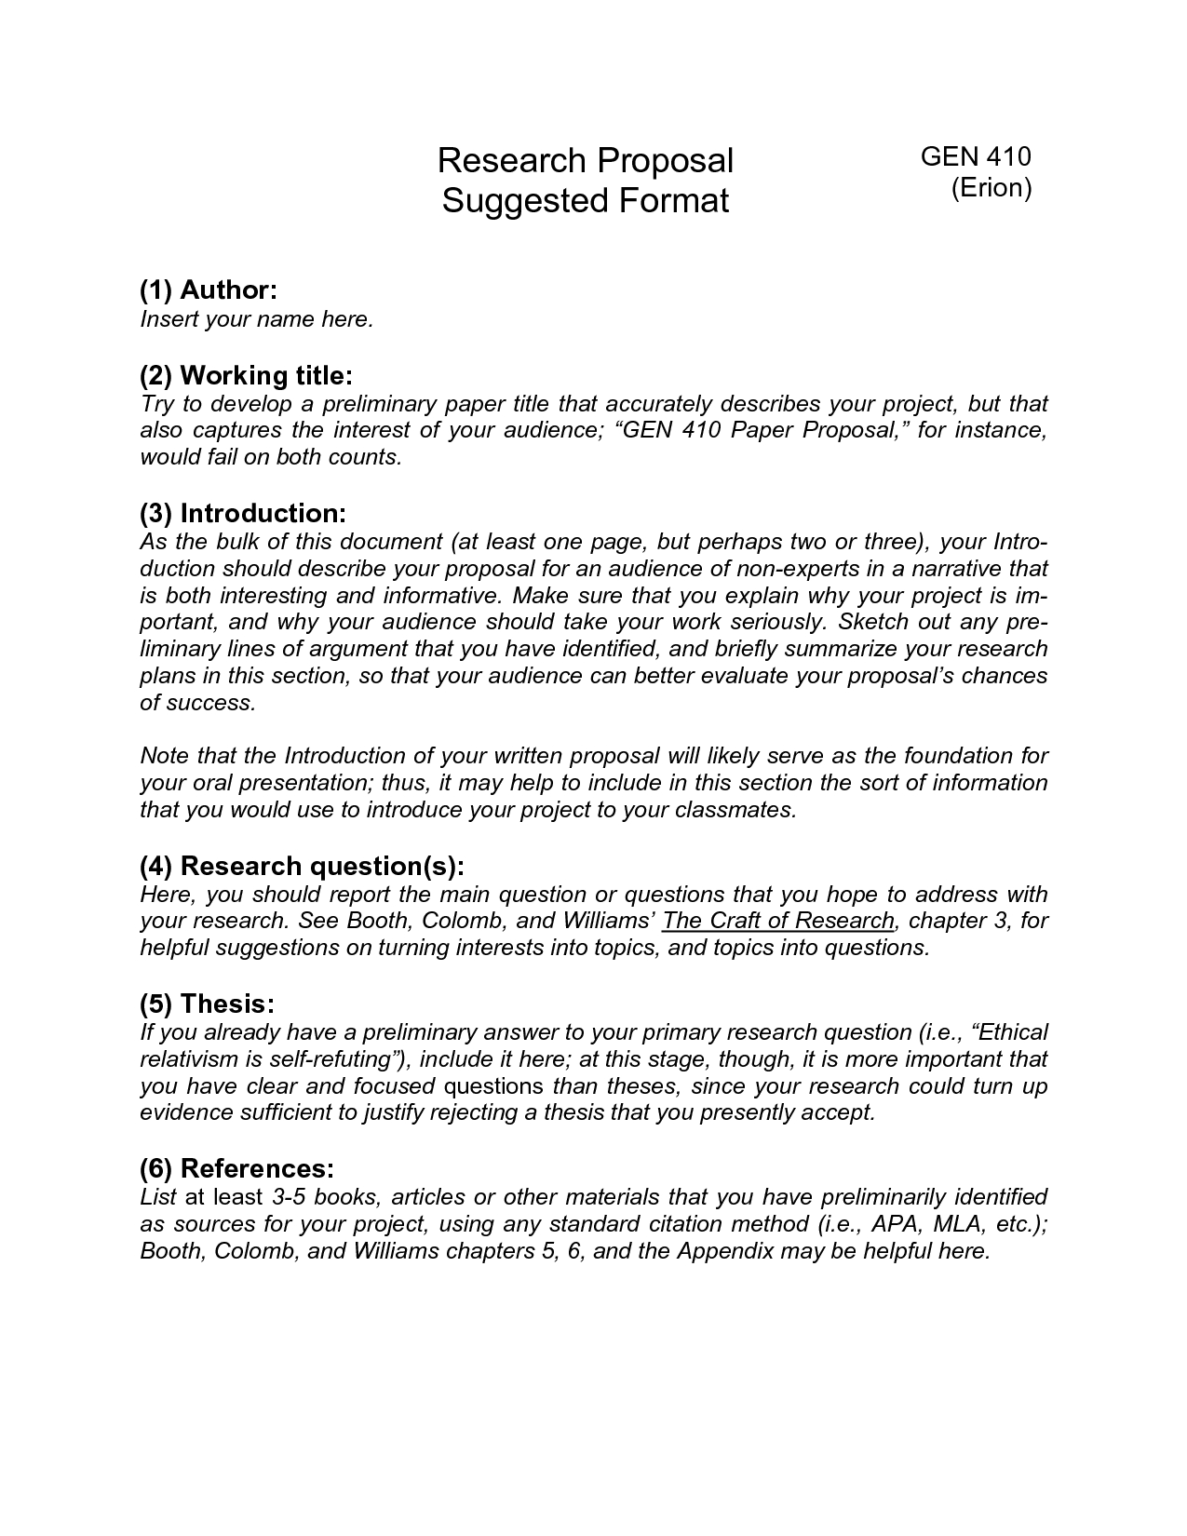 Research Paper Best Photo Of Apa Proposal Example Style In Report Sample Template Essay